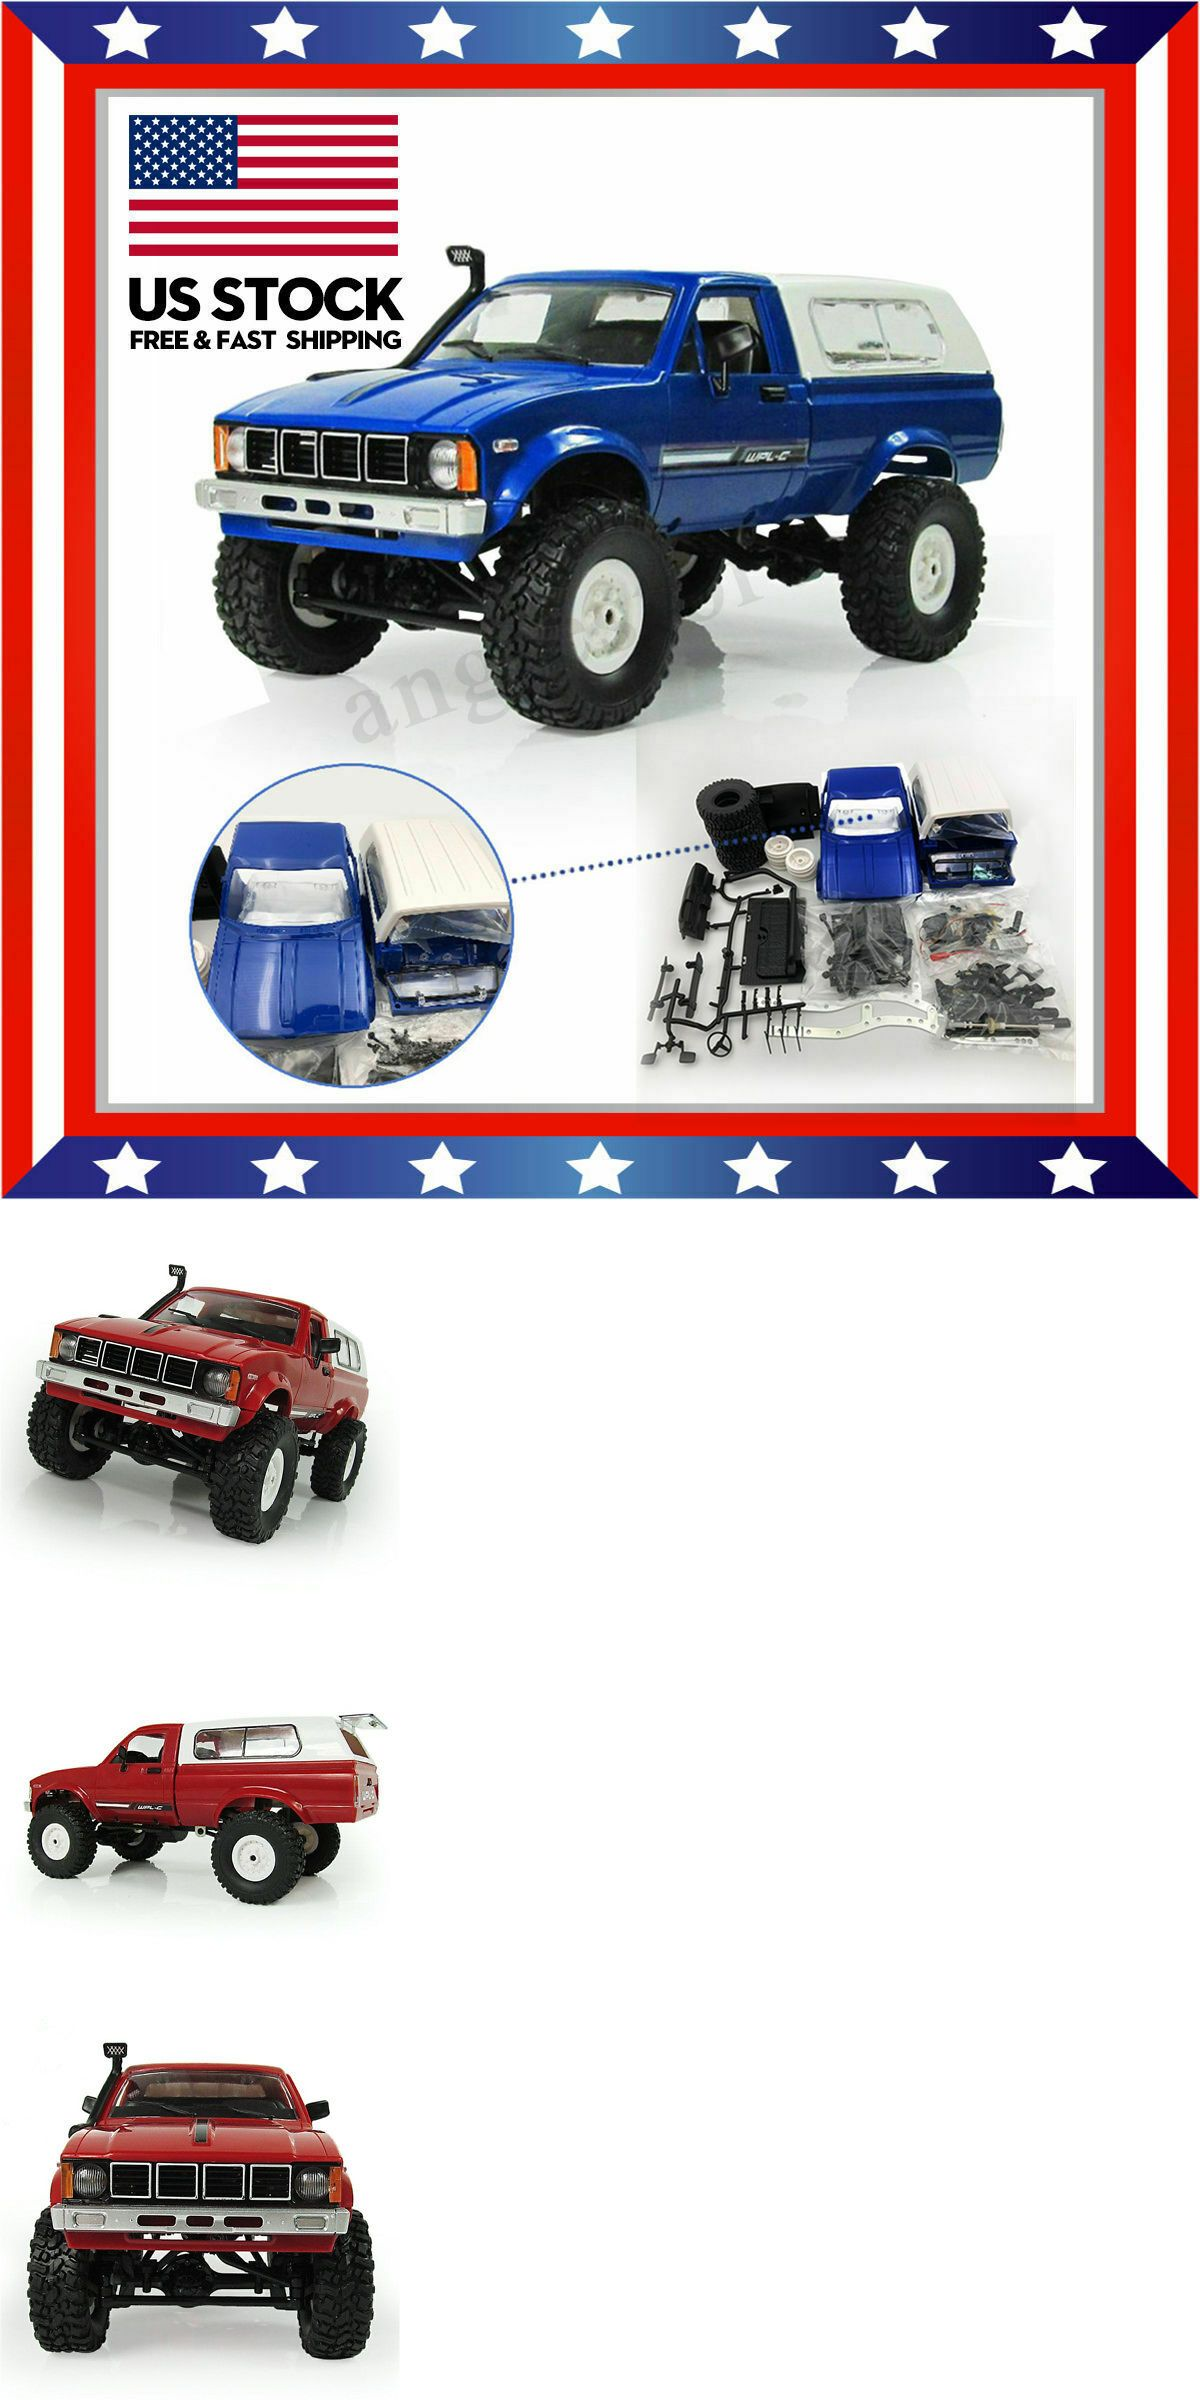 RC Model Vehicles and Kits 182181: Wpl C24 1 16 Kit 4Wd 2 4G